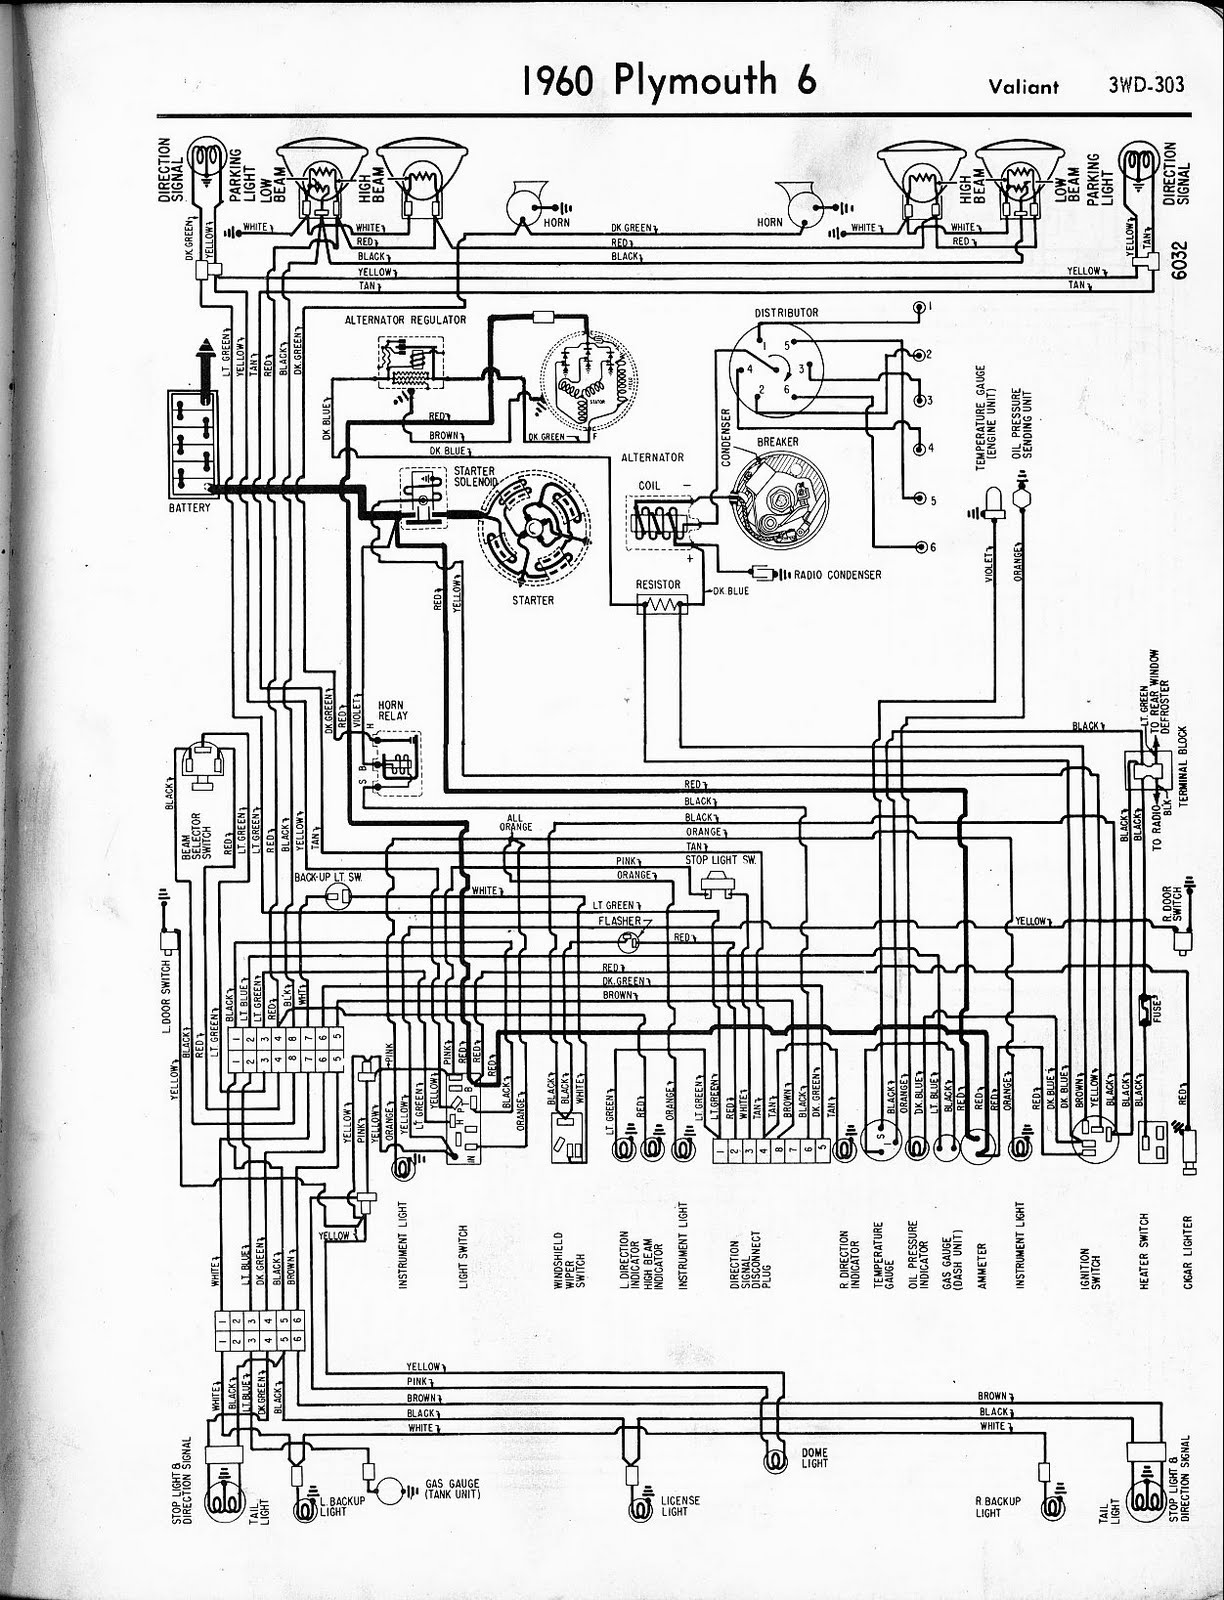 Auto Diagram 1970 Plymouth Wiring 1960 Chevy Truck Wiring Diagram Grab Grab Lastanzadeltempo It